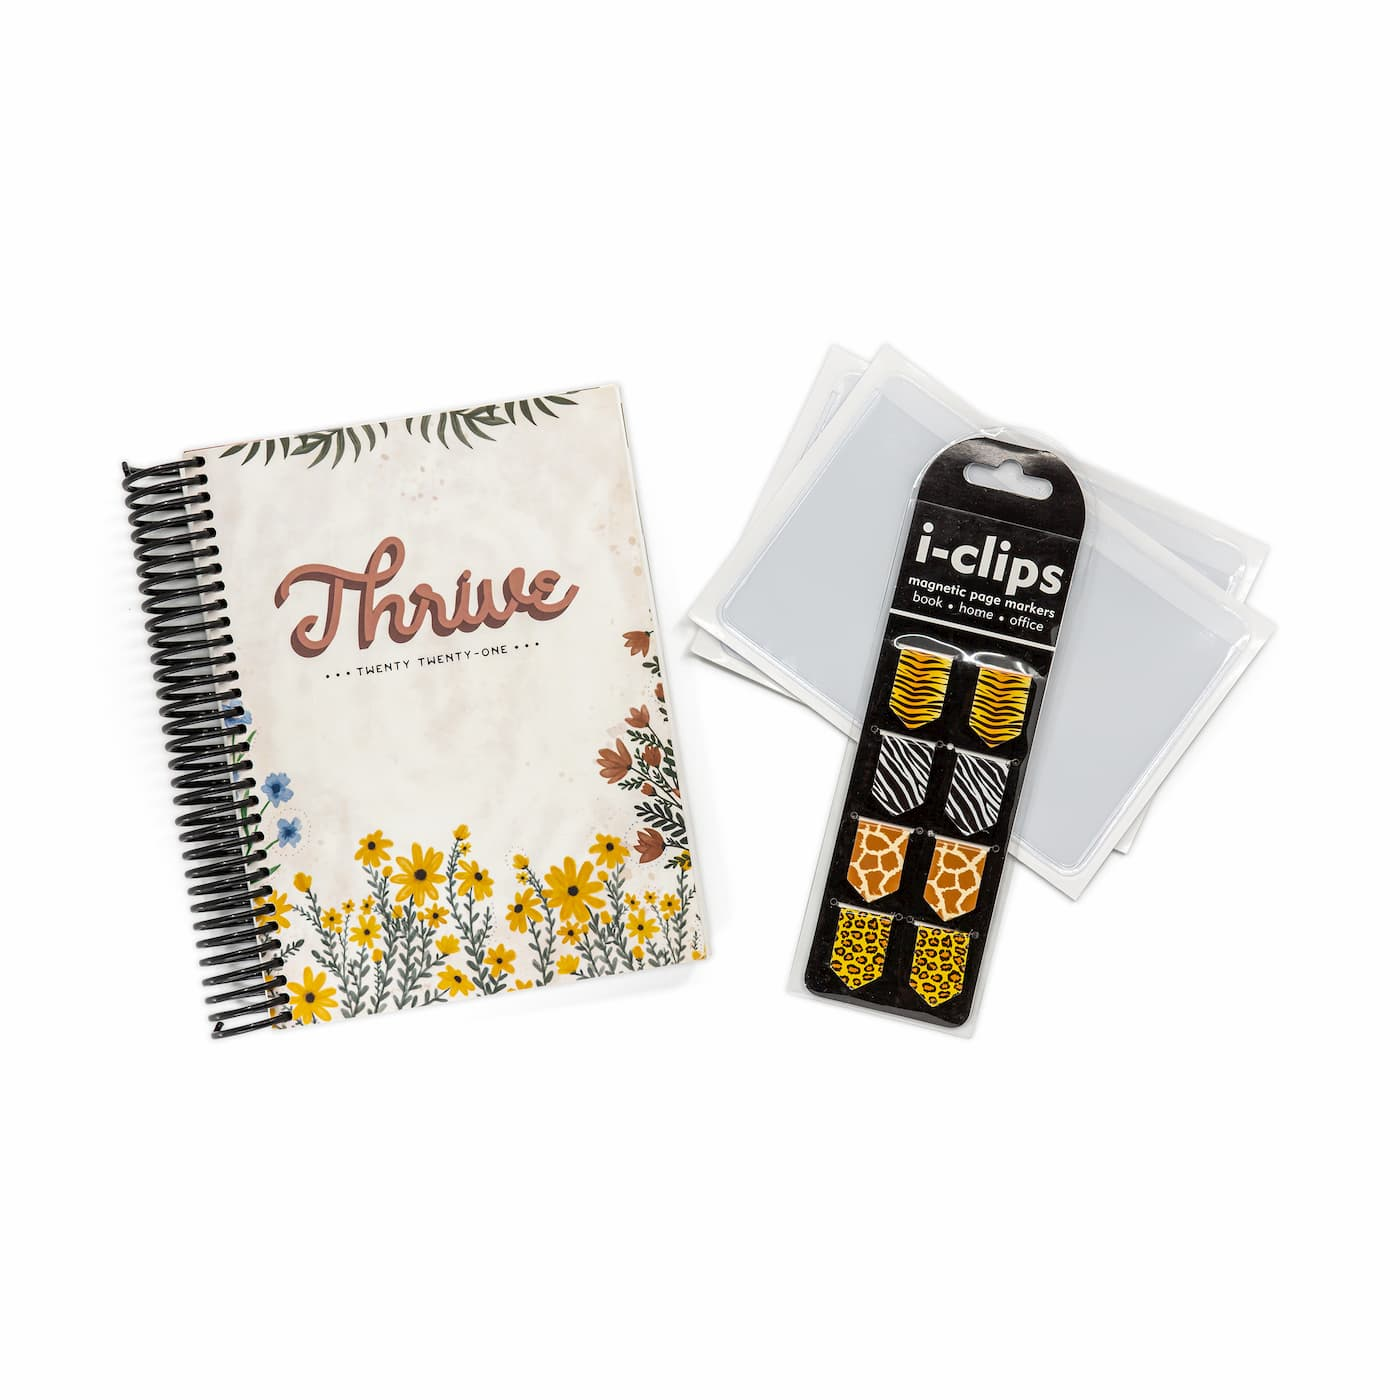 2021 Classic Weekly Planner with Starter Kit